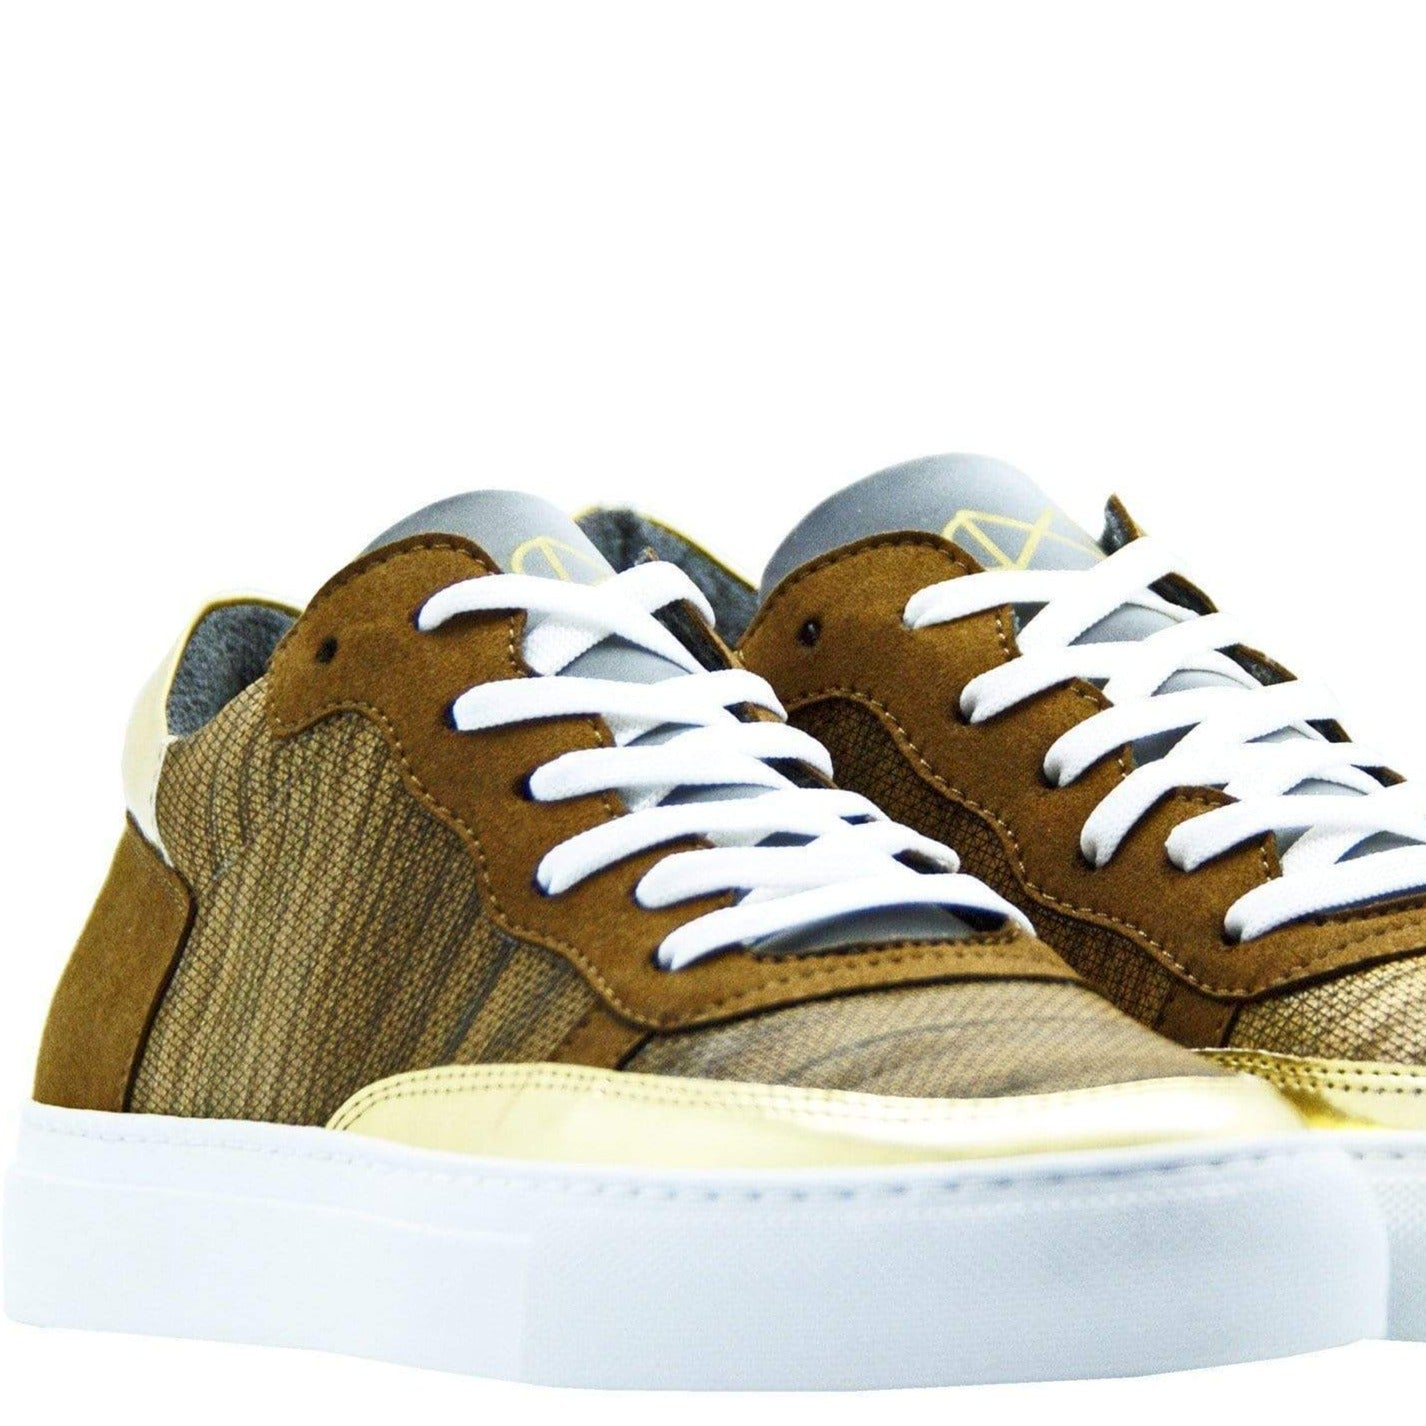 Wood Sneakers σε Real Wood, Reflective Glass και Mircofiber από ανακυκλωμένο PET.